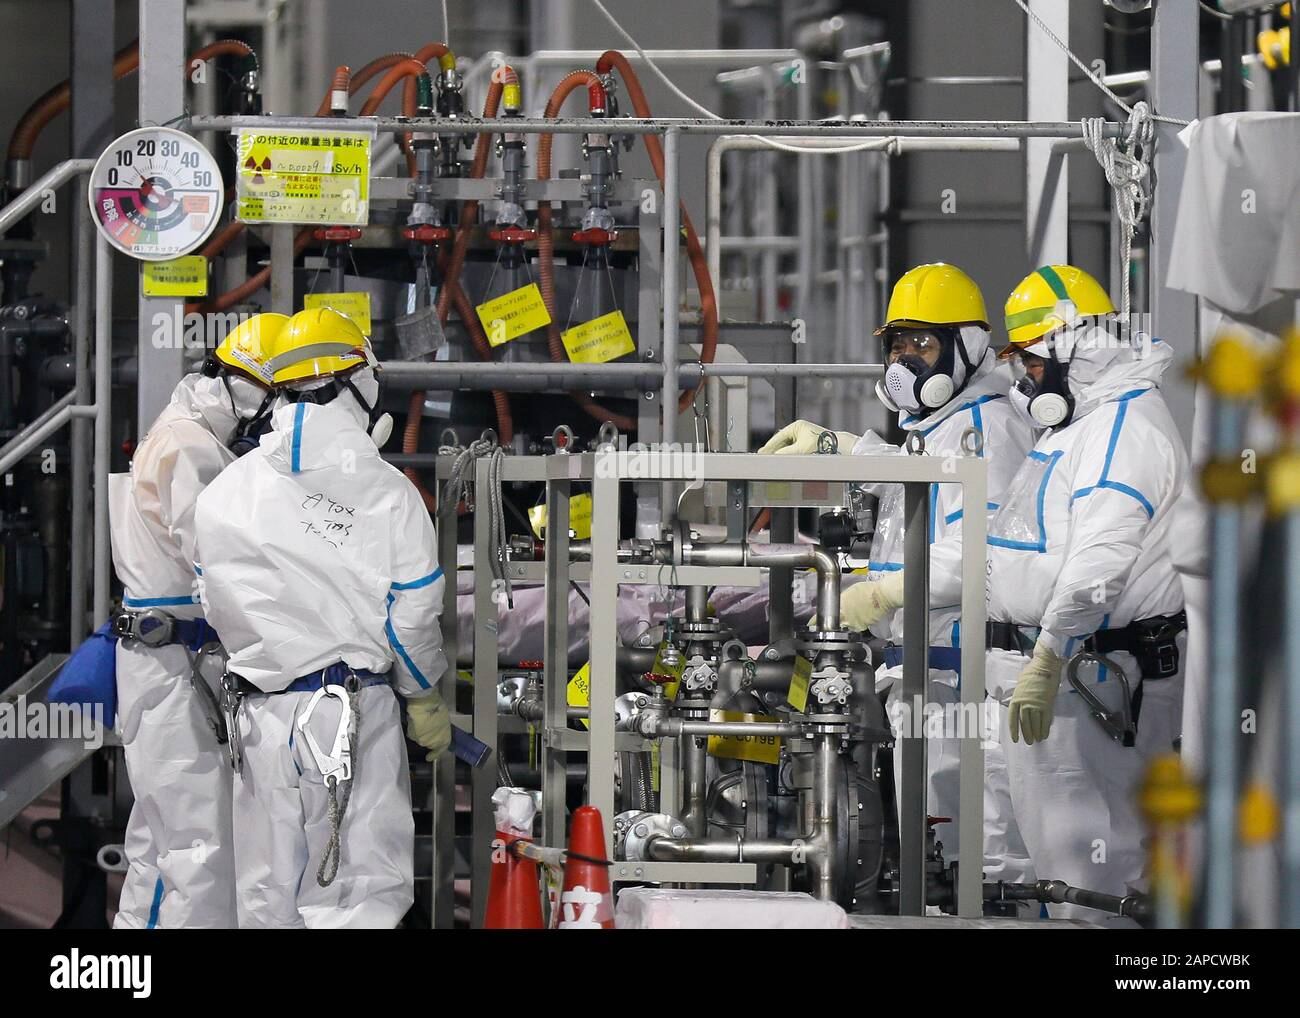 Okuma, Fukushima, Japan. 22nd Jan, 2020. Fully covered workers check water processing system ALPS(Multi-nuclide retrieval equipment) where process contaminated water to store in tanks at ALPS' house of tsunami-devastated Tokyo Electric Power Company (TEPCO) Fukushima Daiichi Nuclear Power Plant in Okuma town, Fukushima Prefecture, 22 January 2020 after transferring to new tanks. The storage tanks including water processed in the ALPS will be full around summer of 2022, TEPCO has told. Japanese government will need to decide soon how manage the processed water still including tritium. (Cred Stock Photo